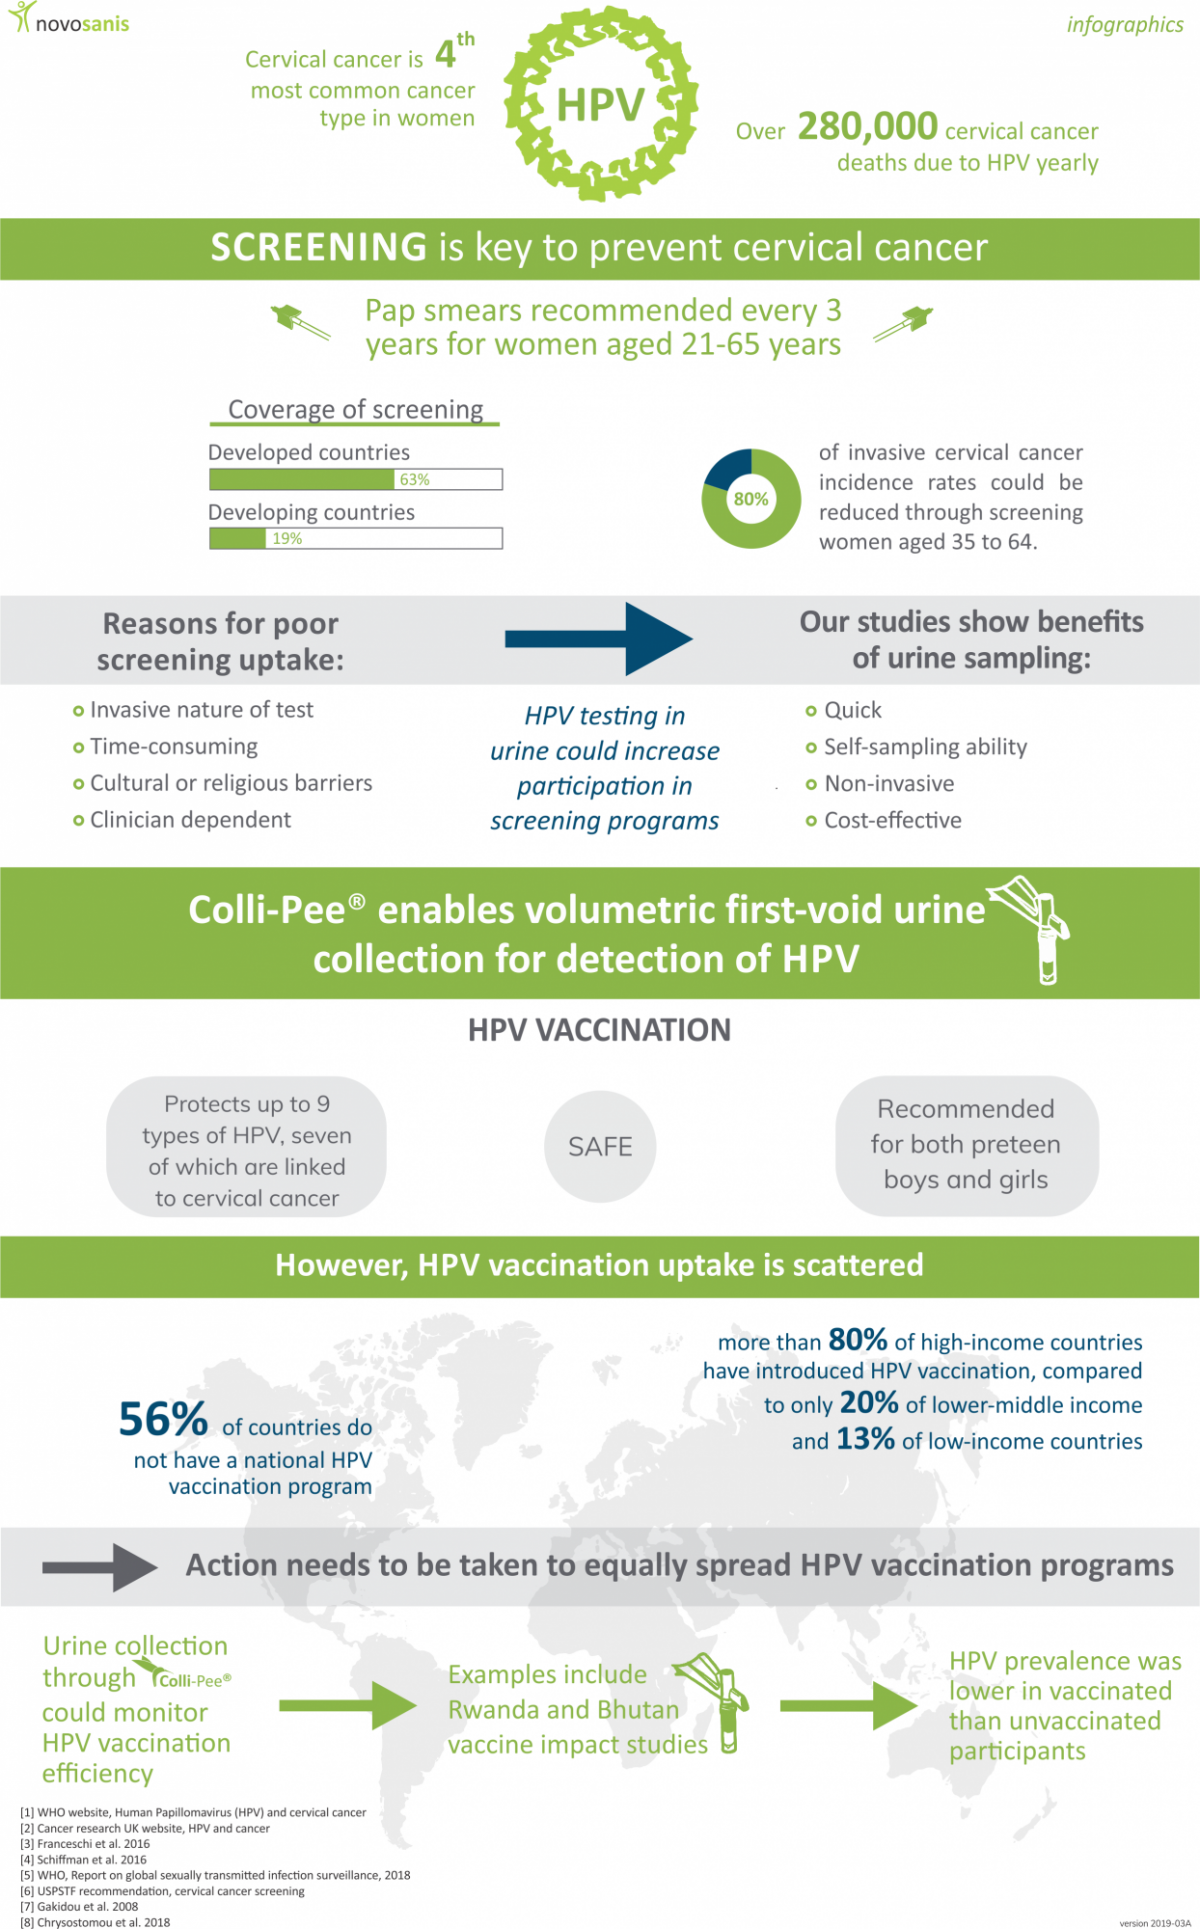 Hpv and urine infection. Translation of